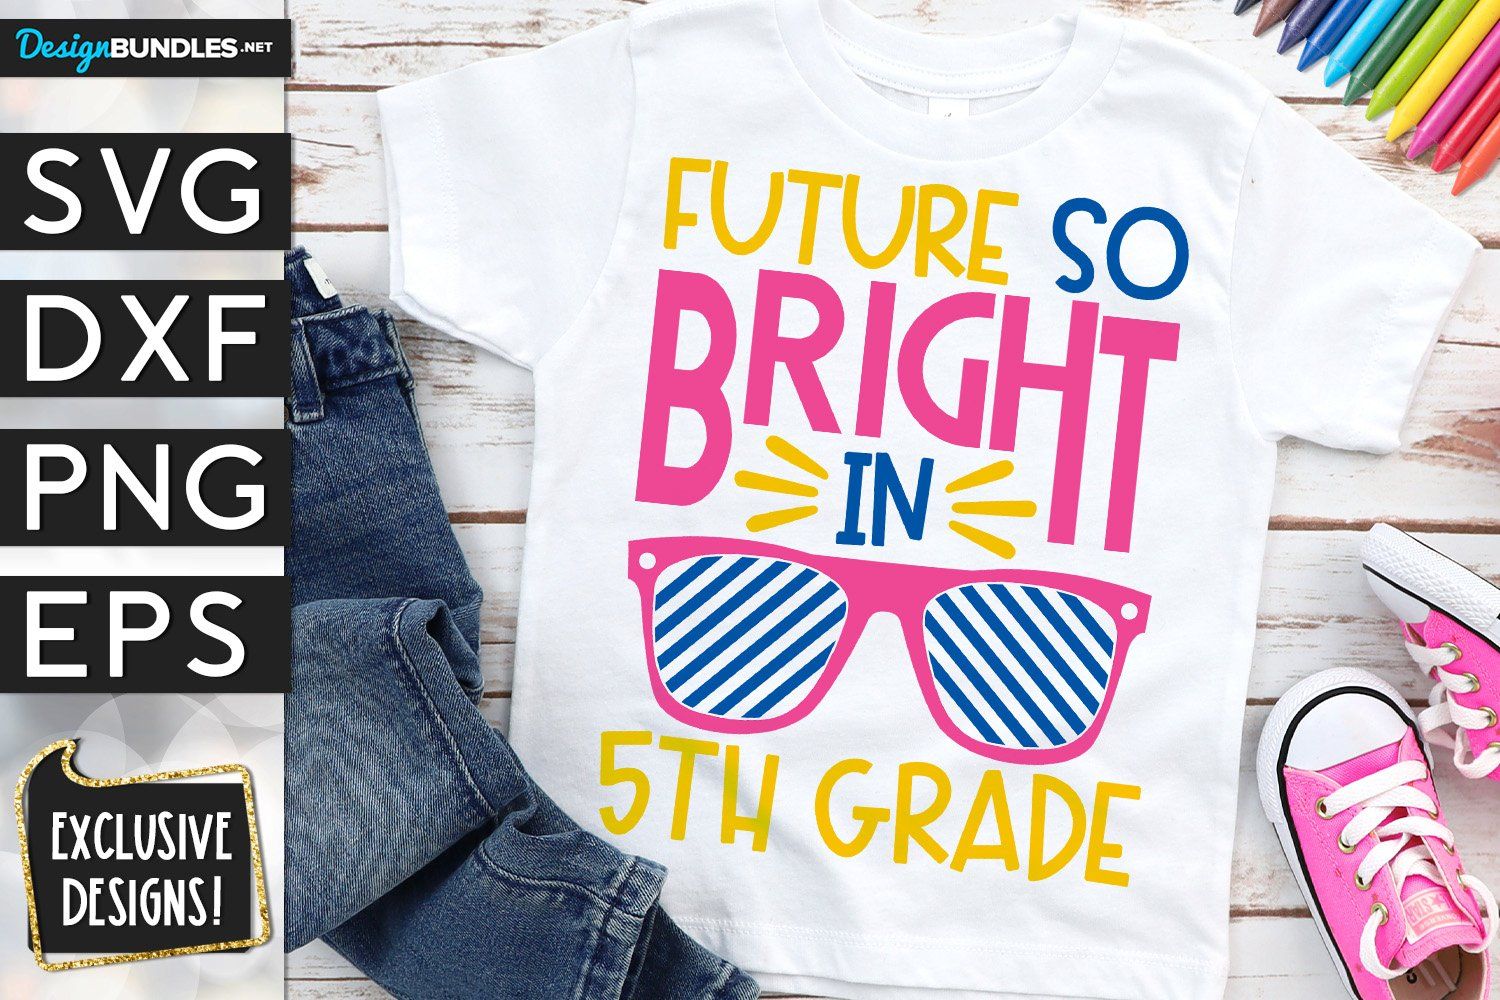 Future So Bright In 5th Grade SVG DXF PNG EPS example image 1